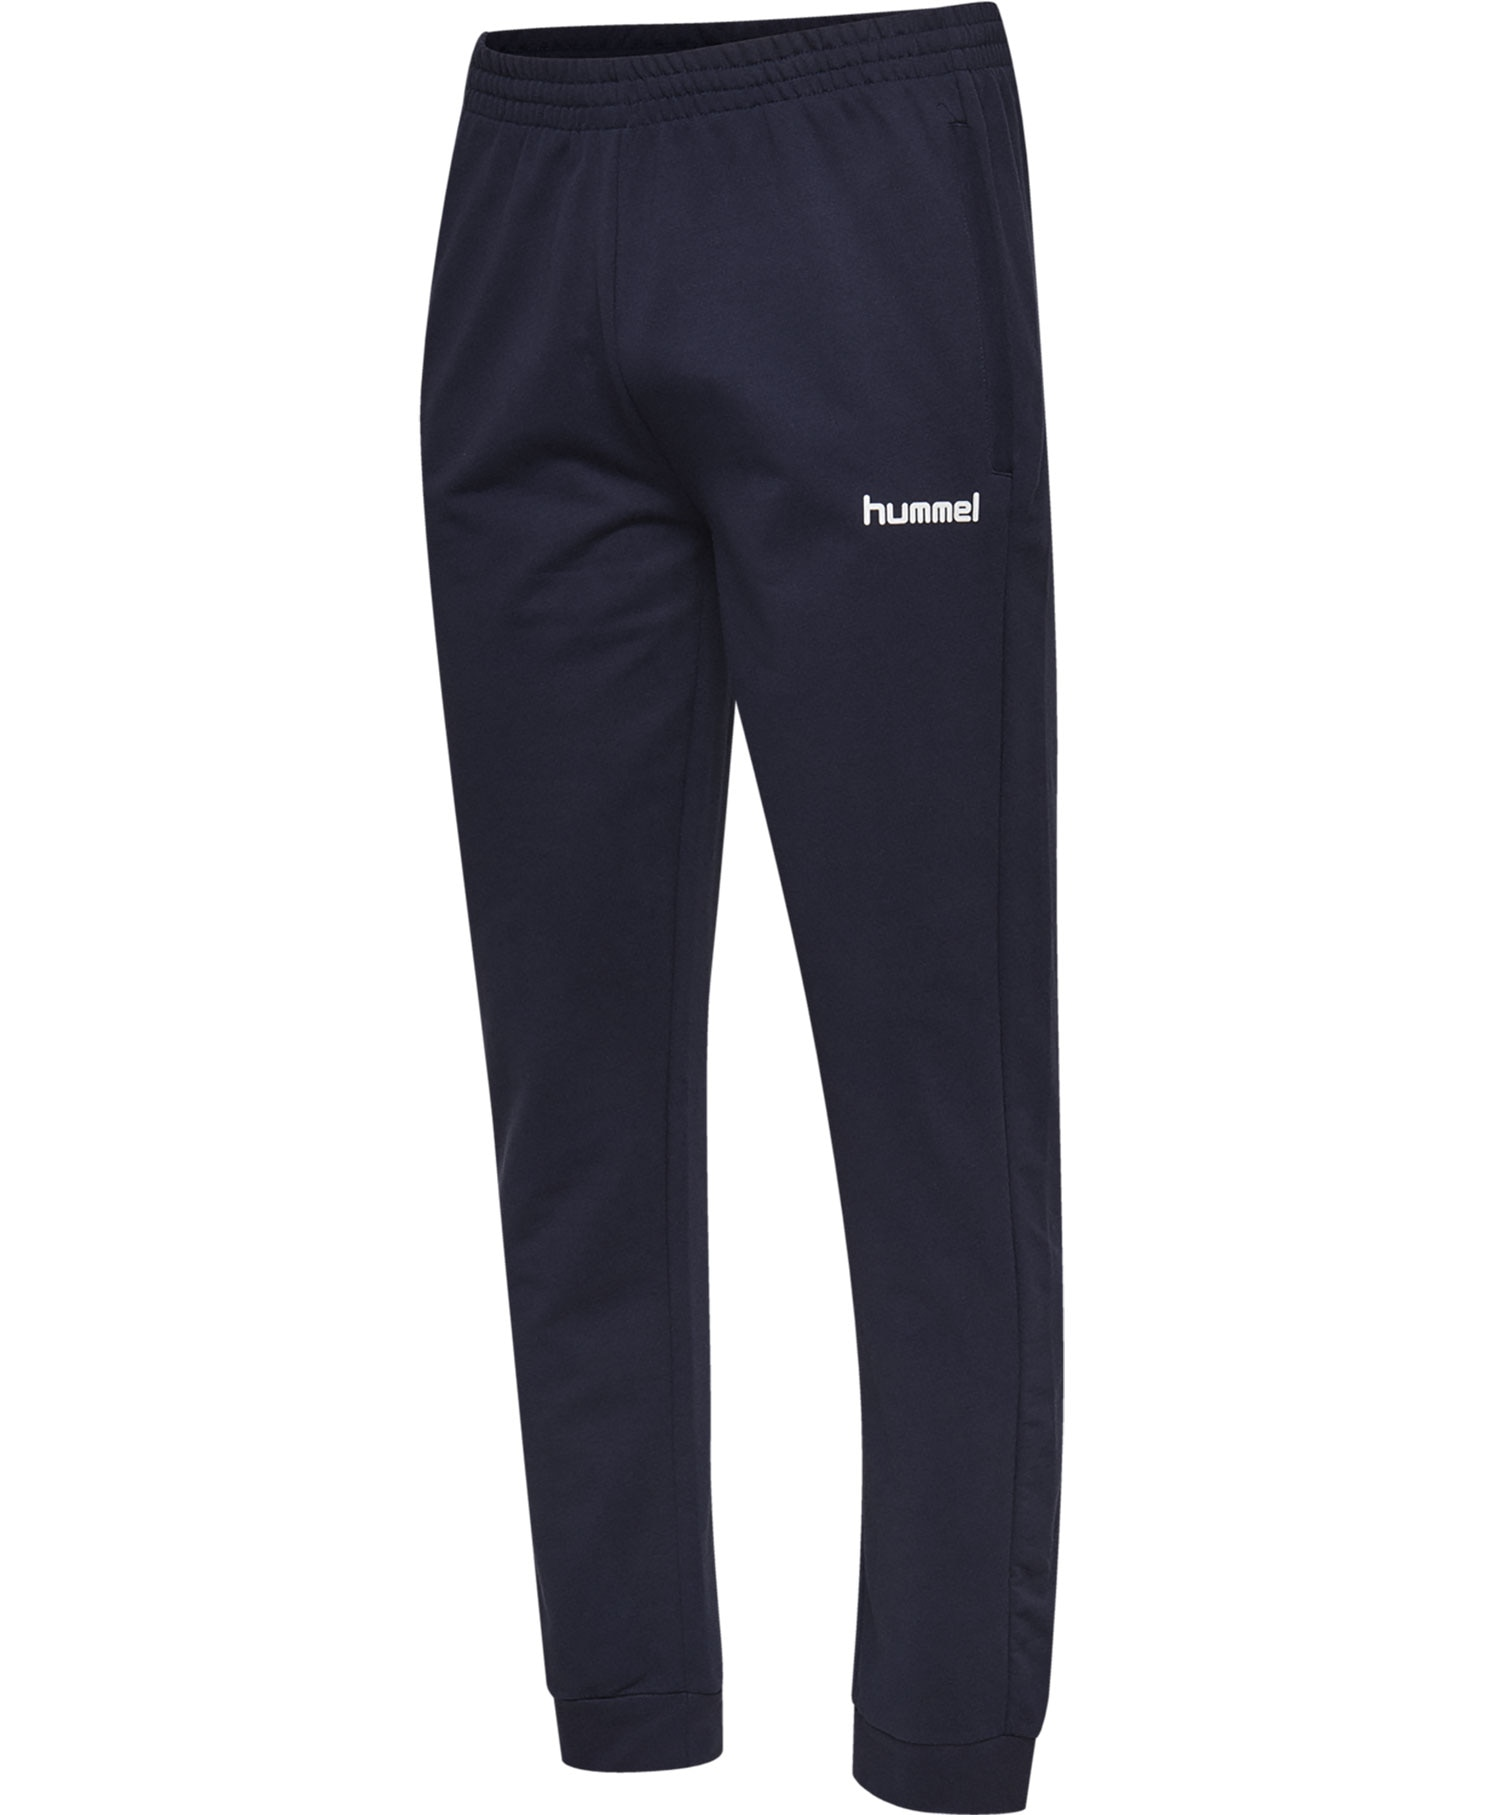 Hummel cotton pant